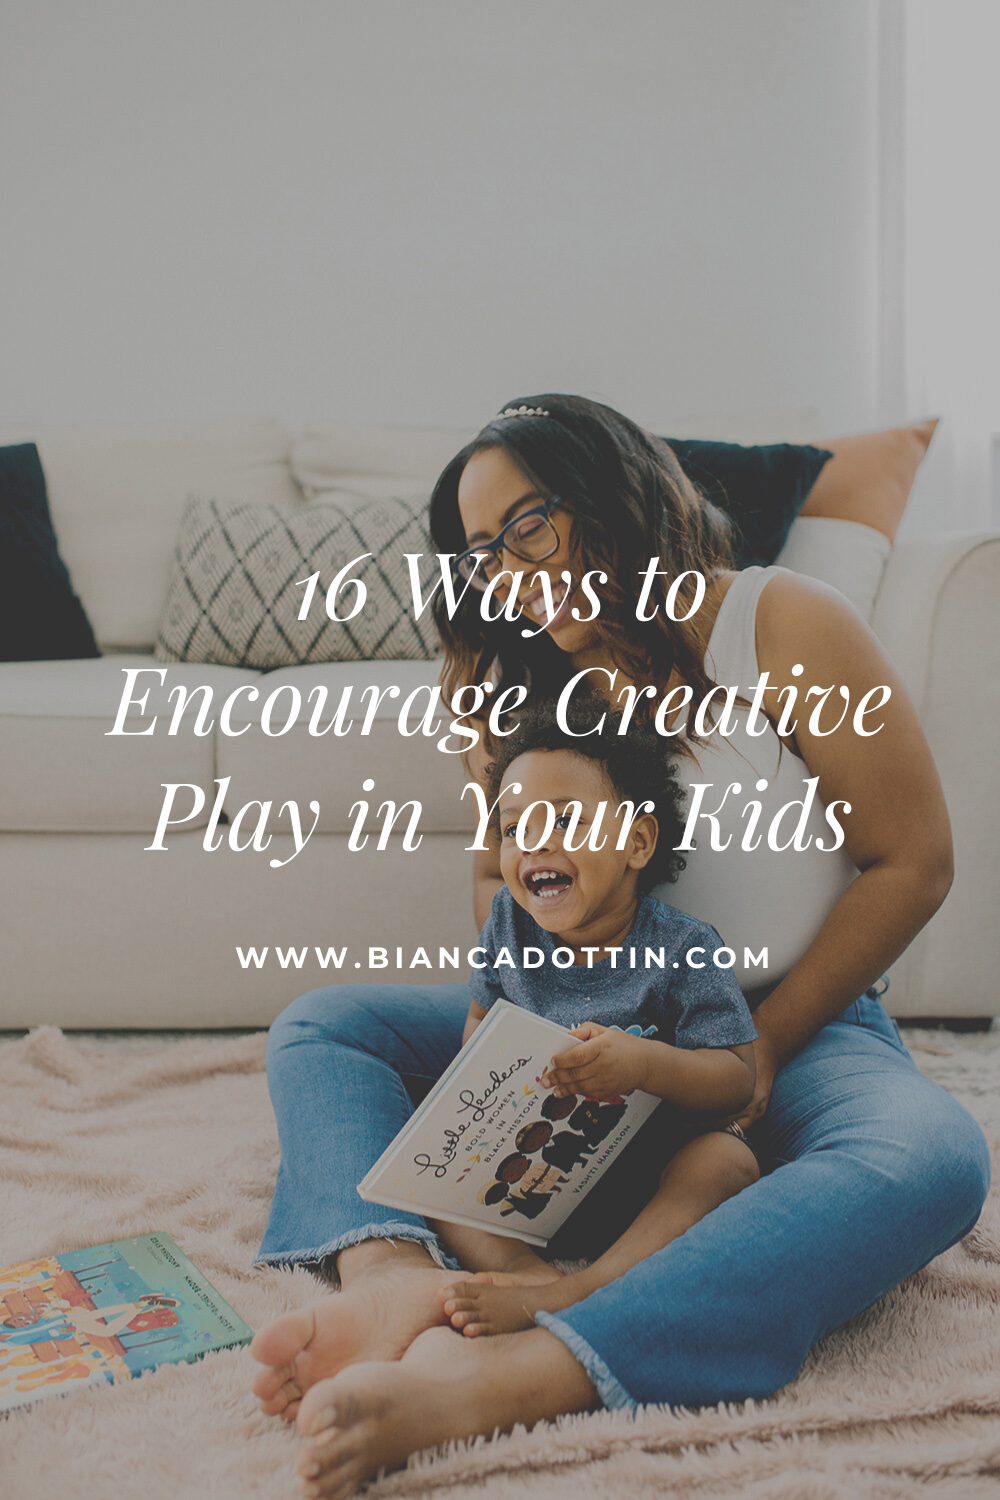 16 Ways to Encourage Creative Play in Your Kids